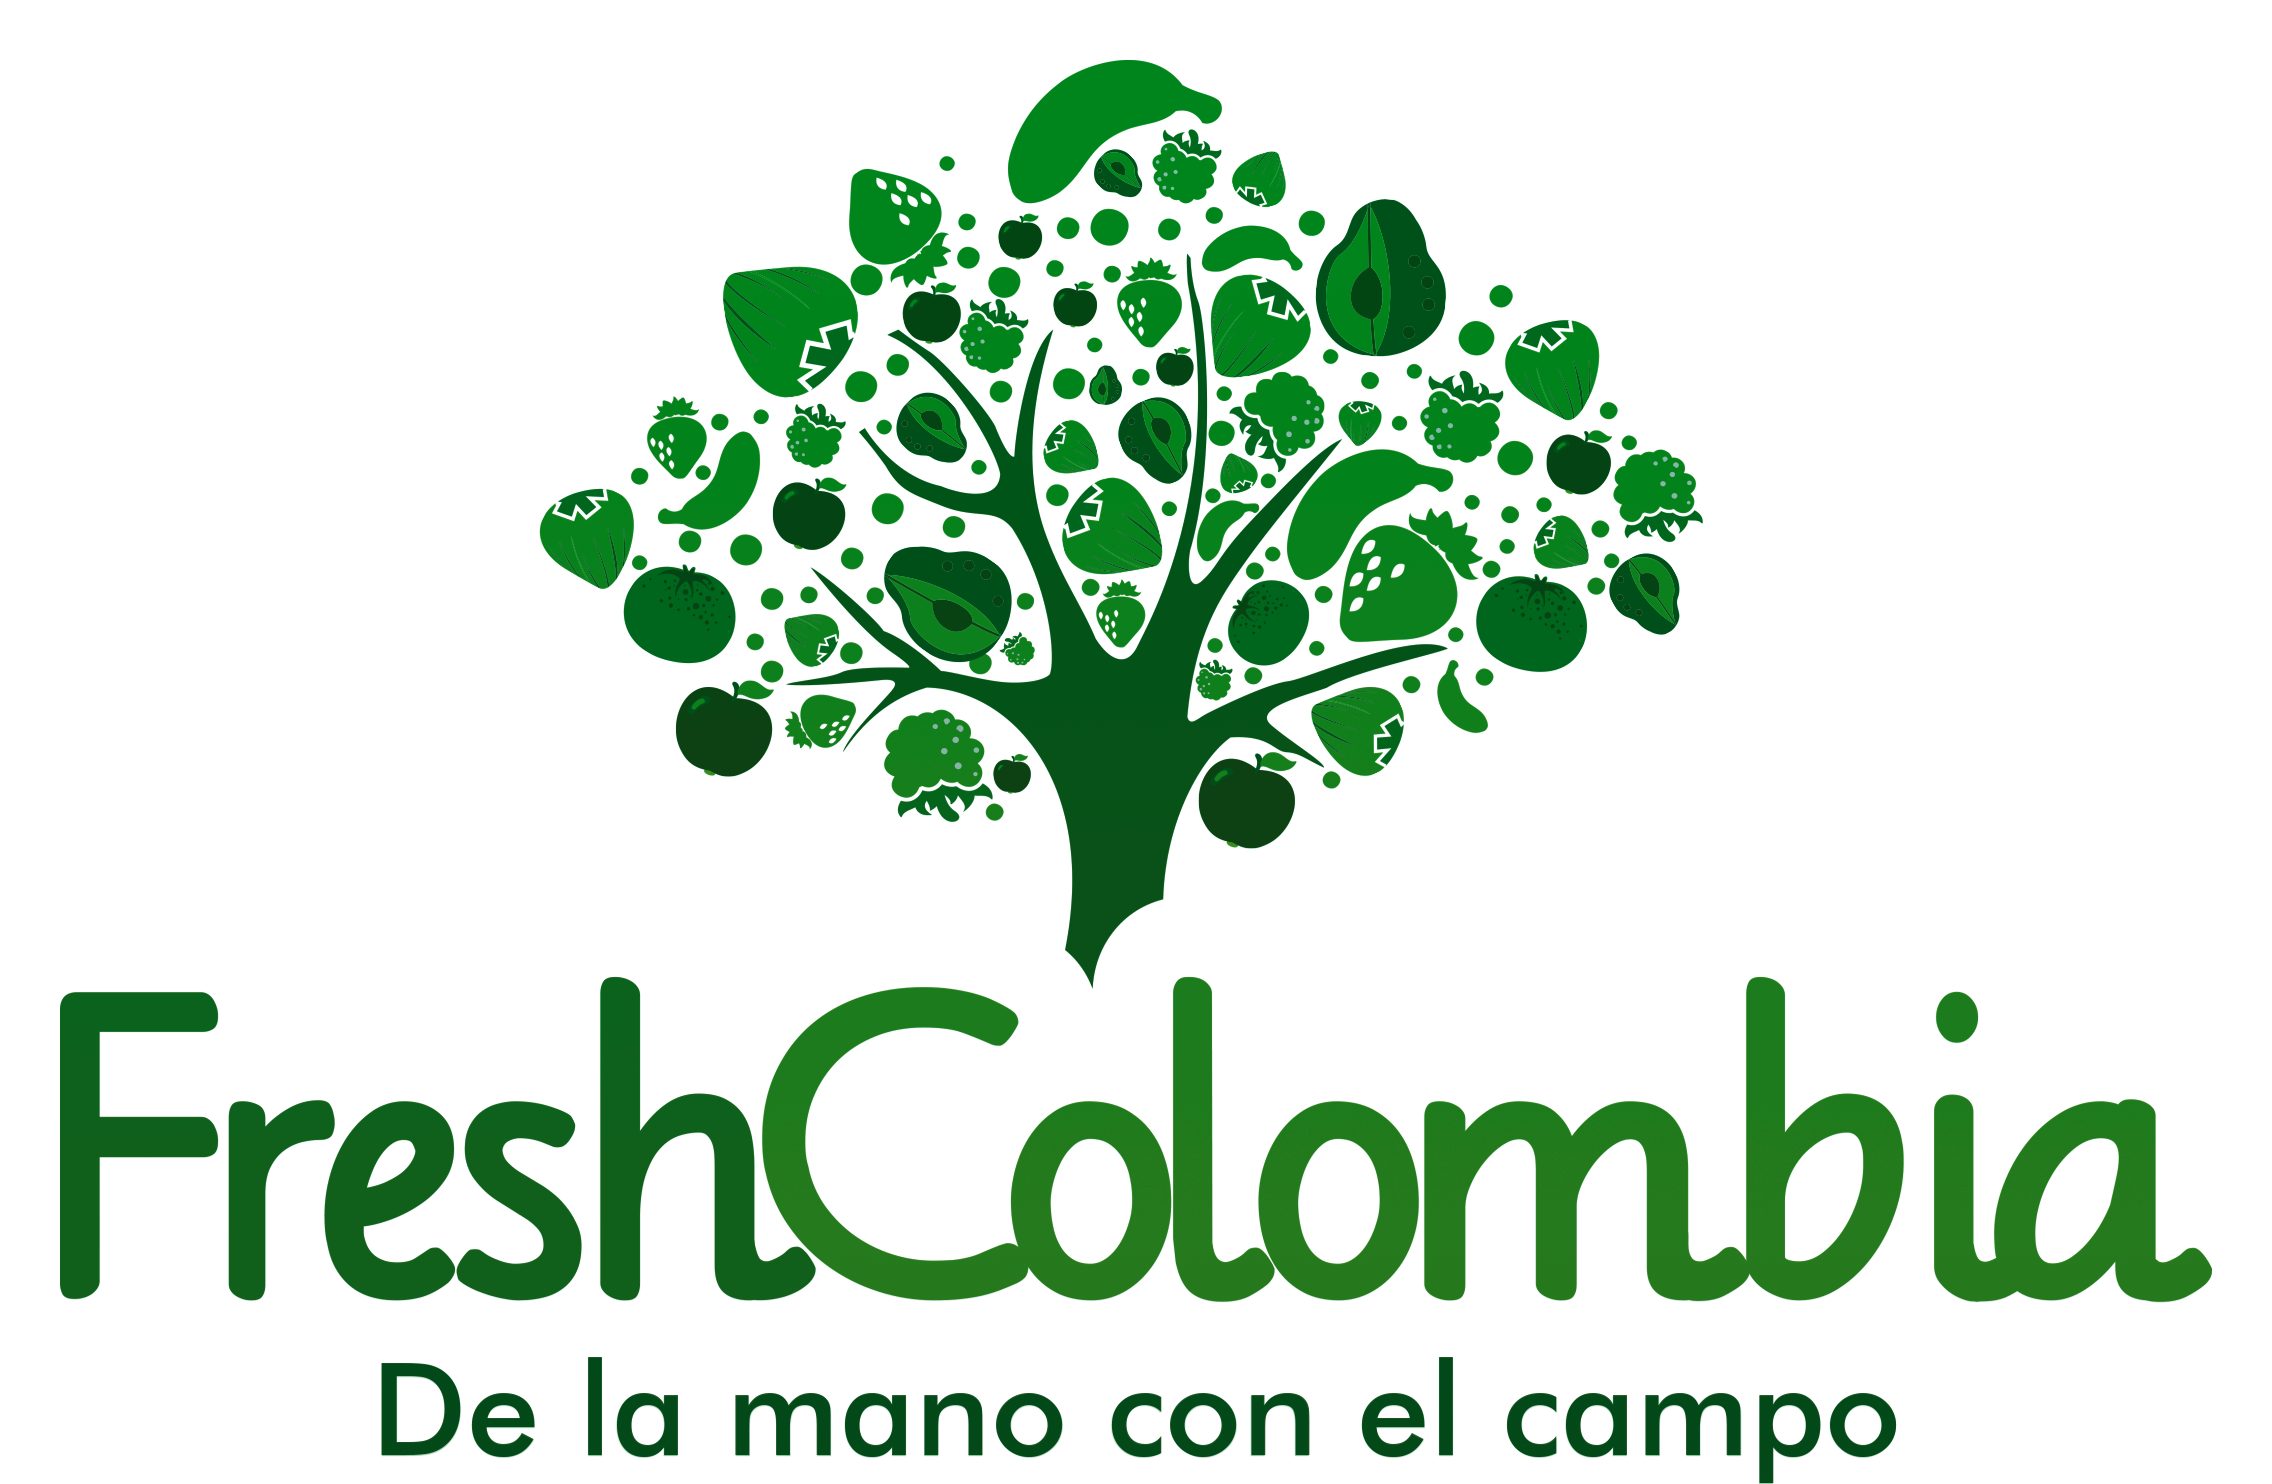 FreshColombia International SAS